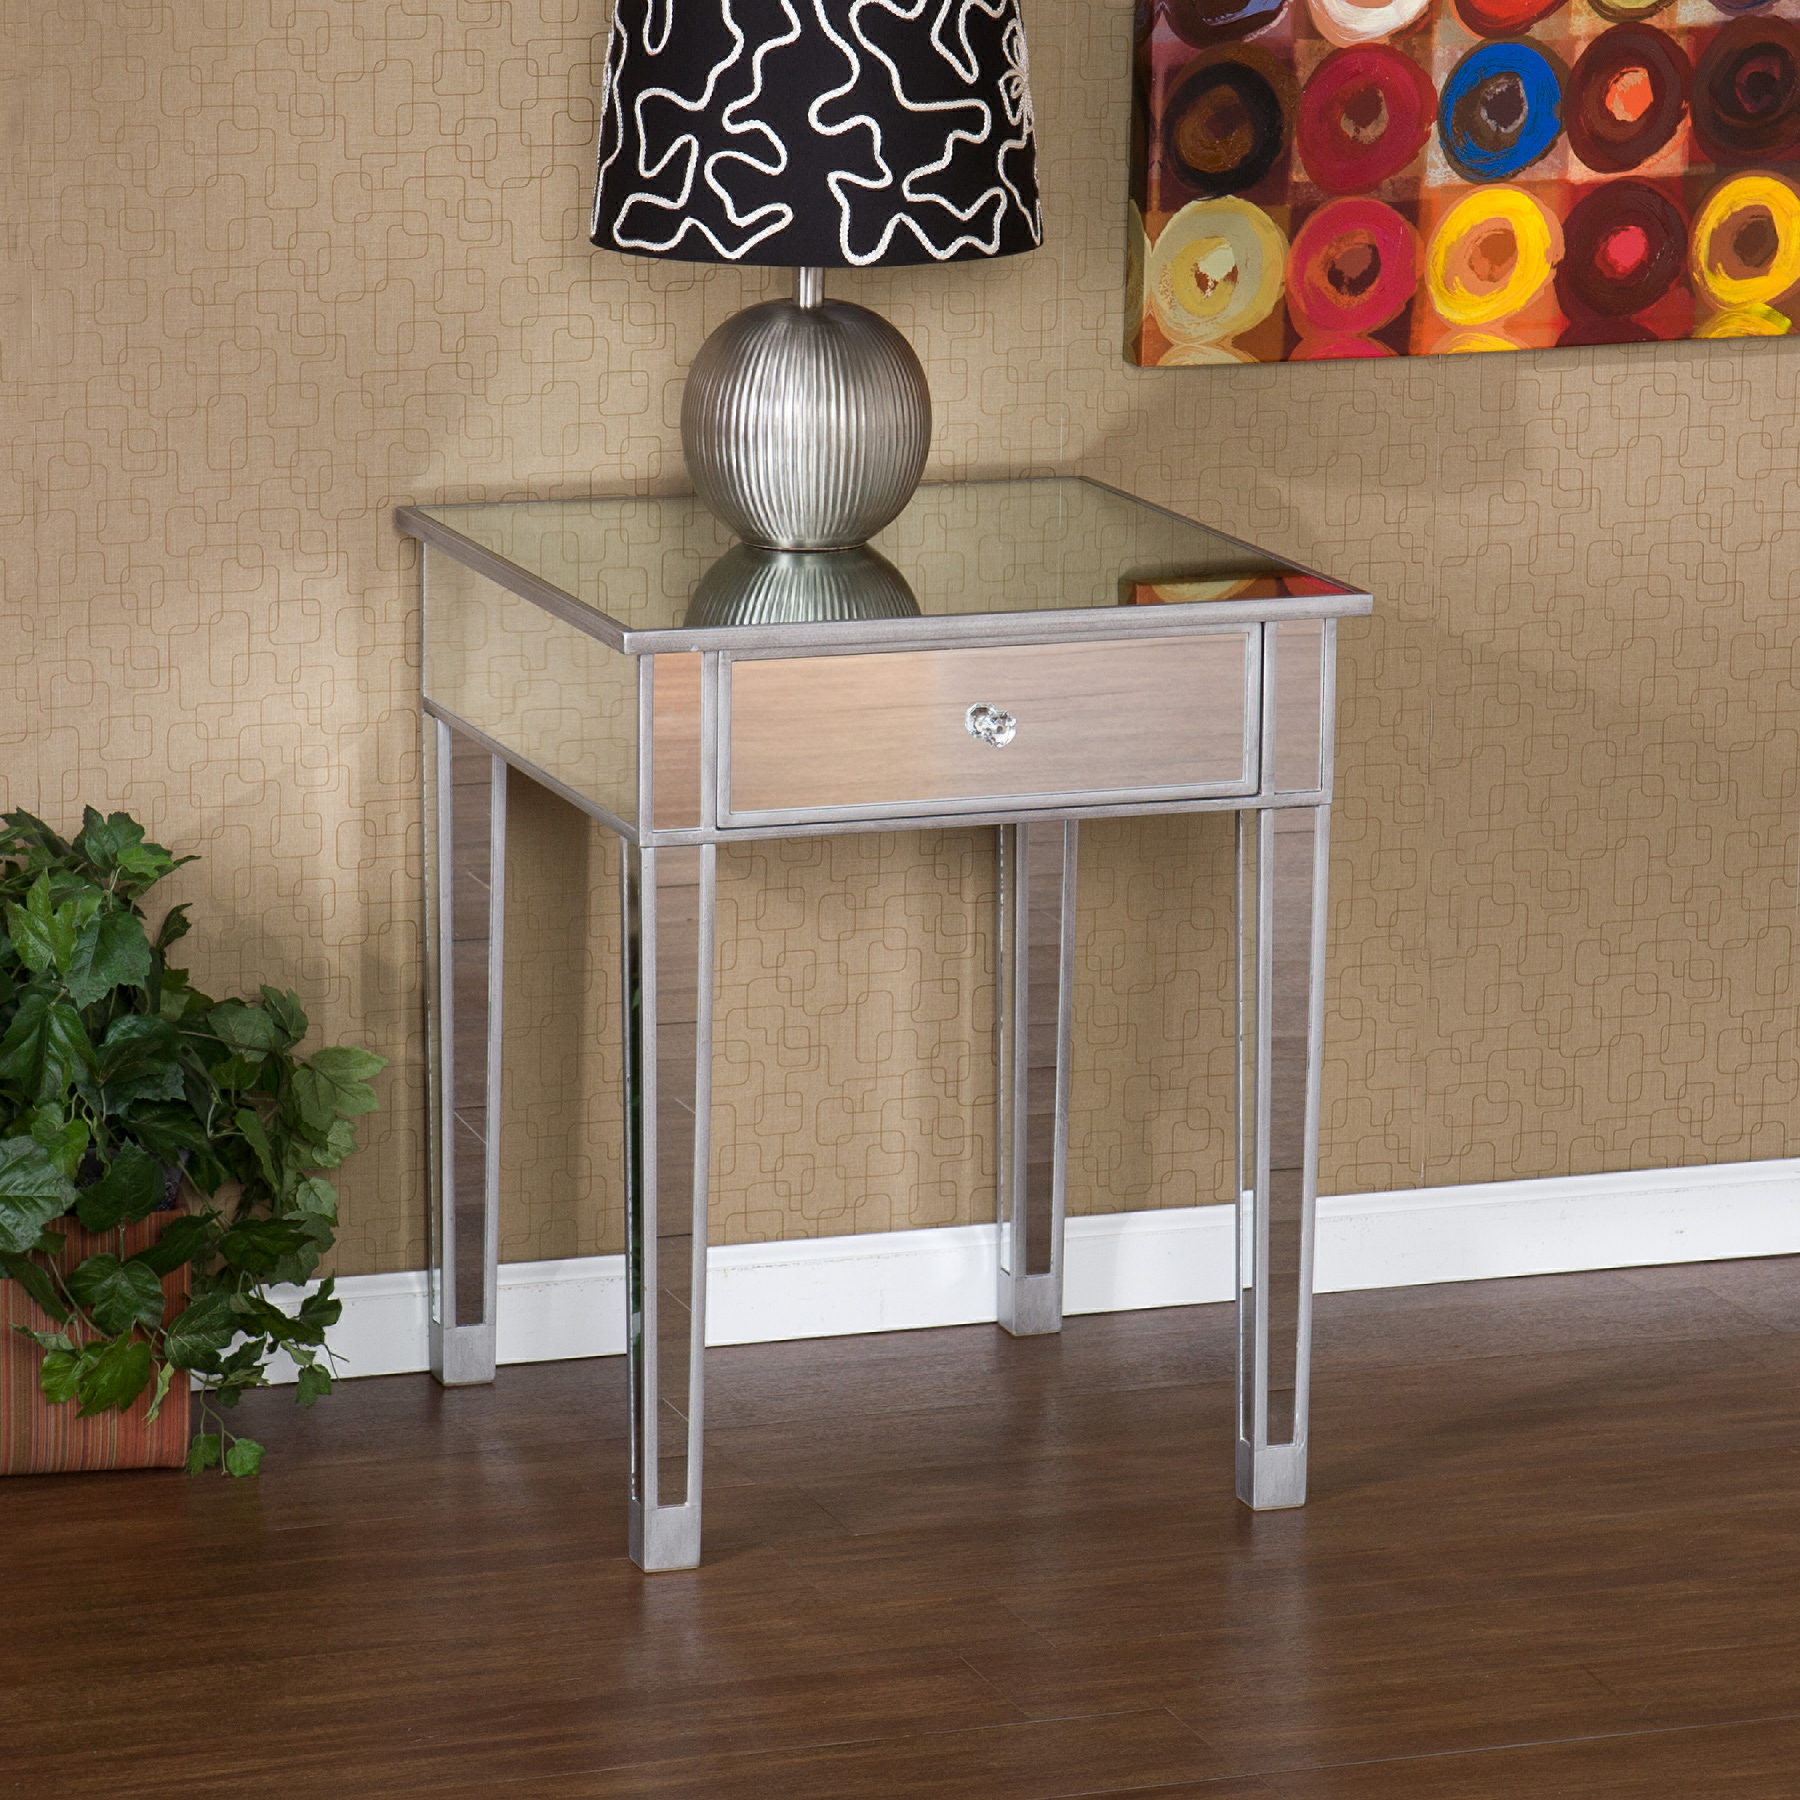 mirage mirrored accent table narrow with drawer target dining room chairs lighting websites wine rack industrial trestle plastic folding side gray nesting tables outdoor patio